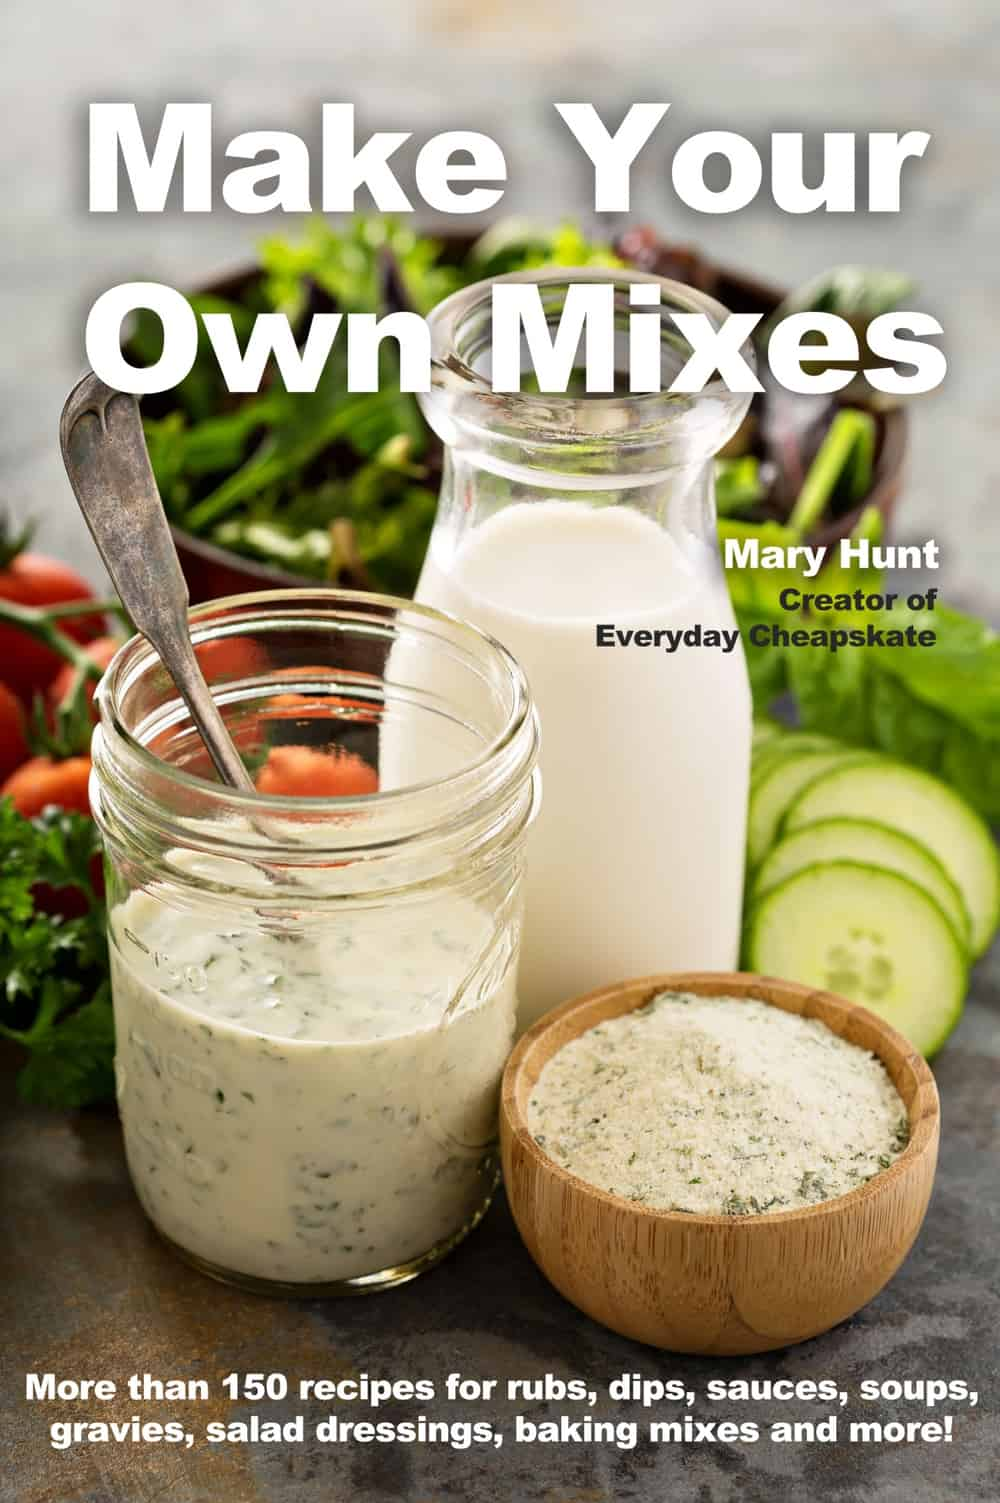 Easy do-it-yourself recipes and instructions to duplicate your favorite commercial seasonings, rubs, dips, sauces, soups, gravies, salad dressings, baking mixes and more!